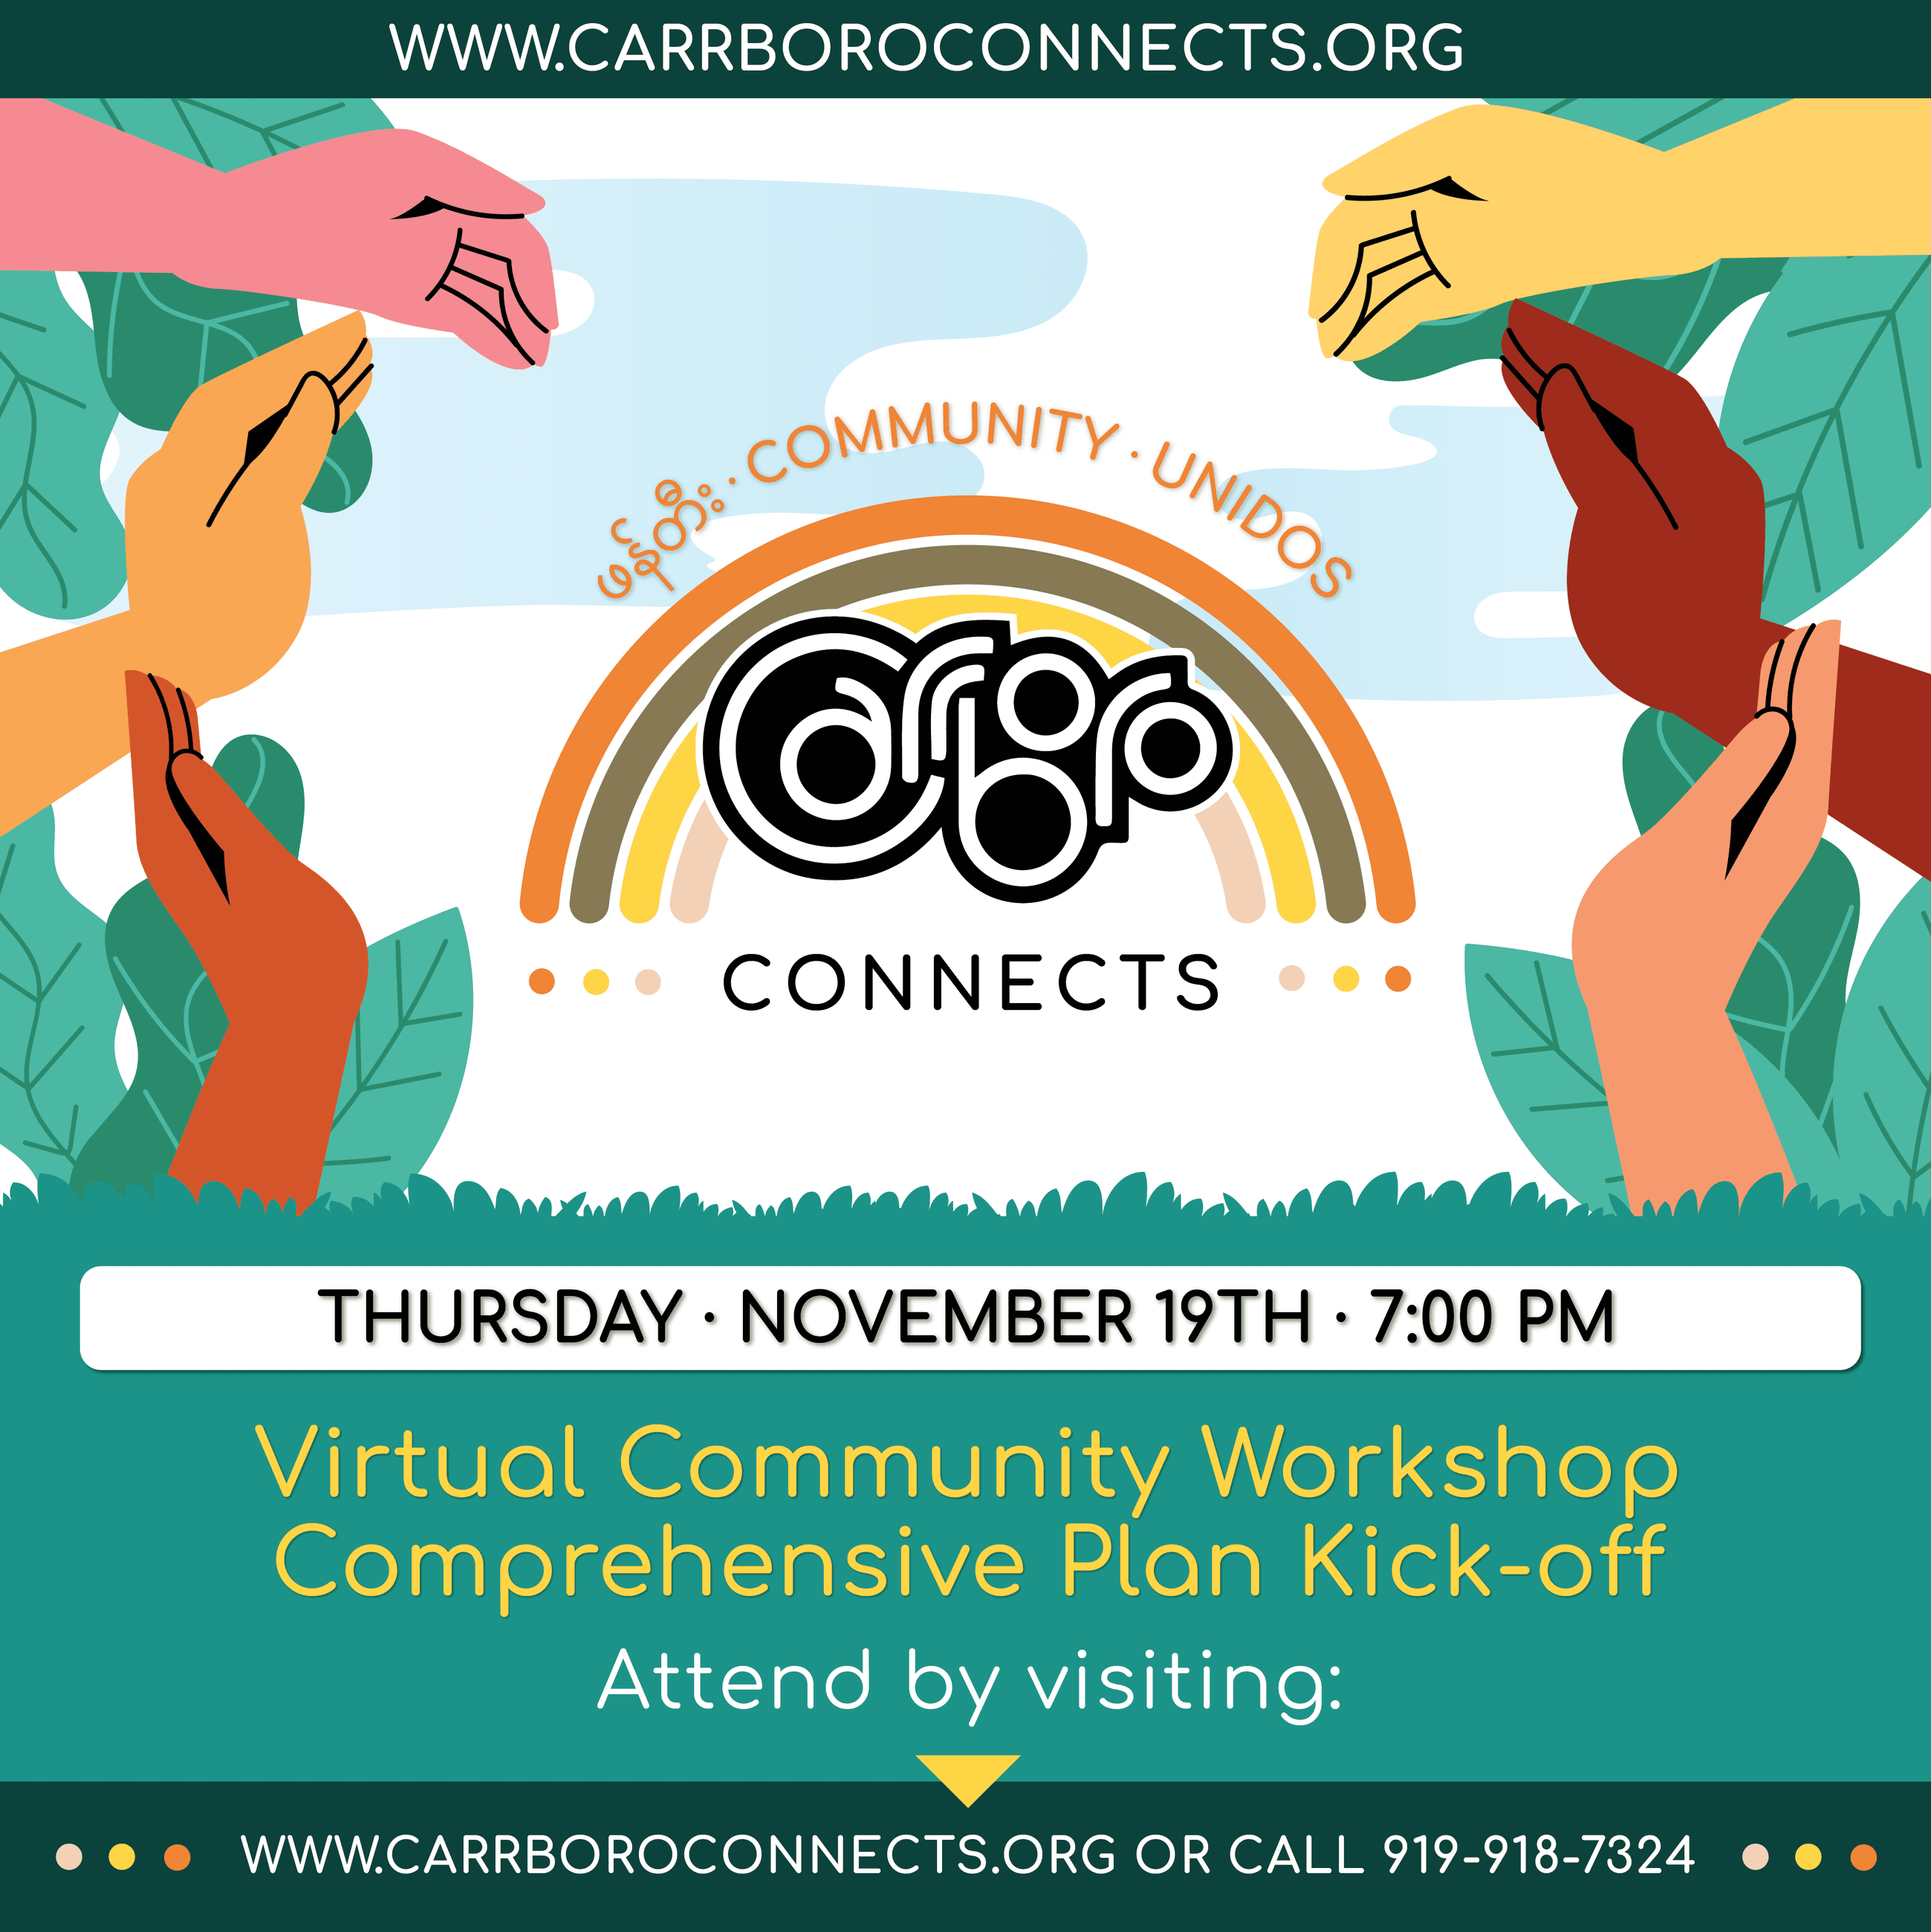 Comprehensive Plan - Carrboro Connects Kickoff